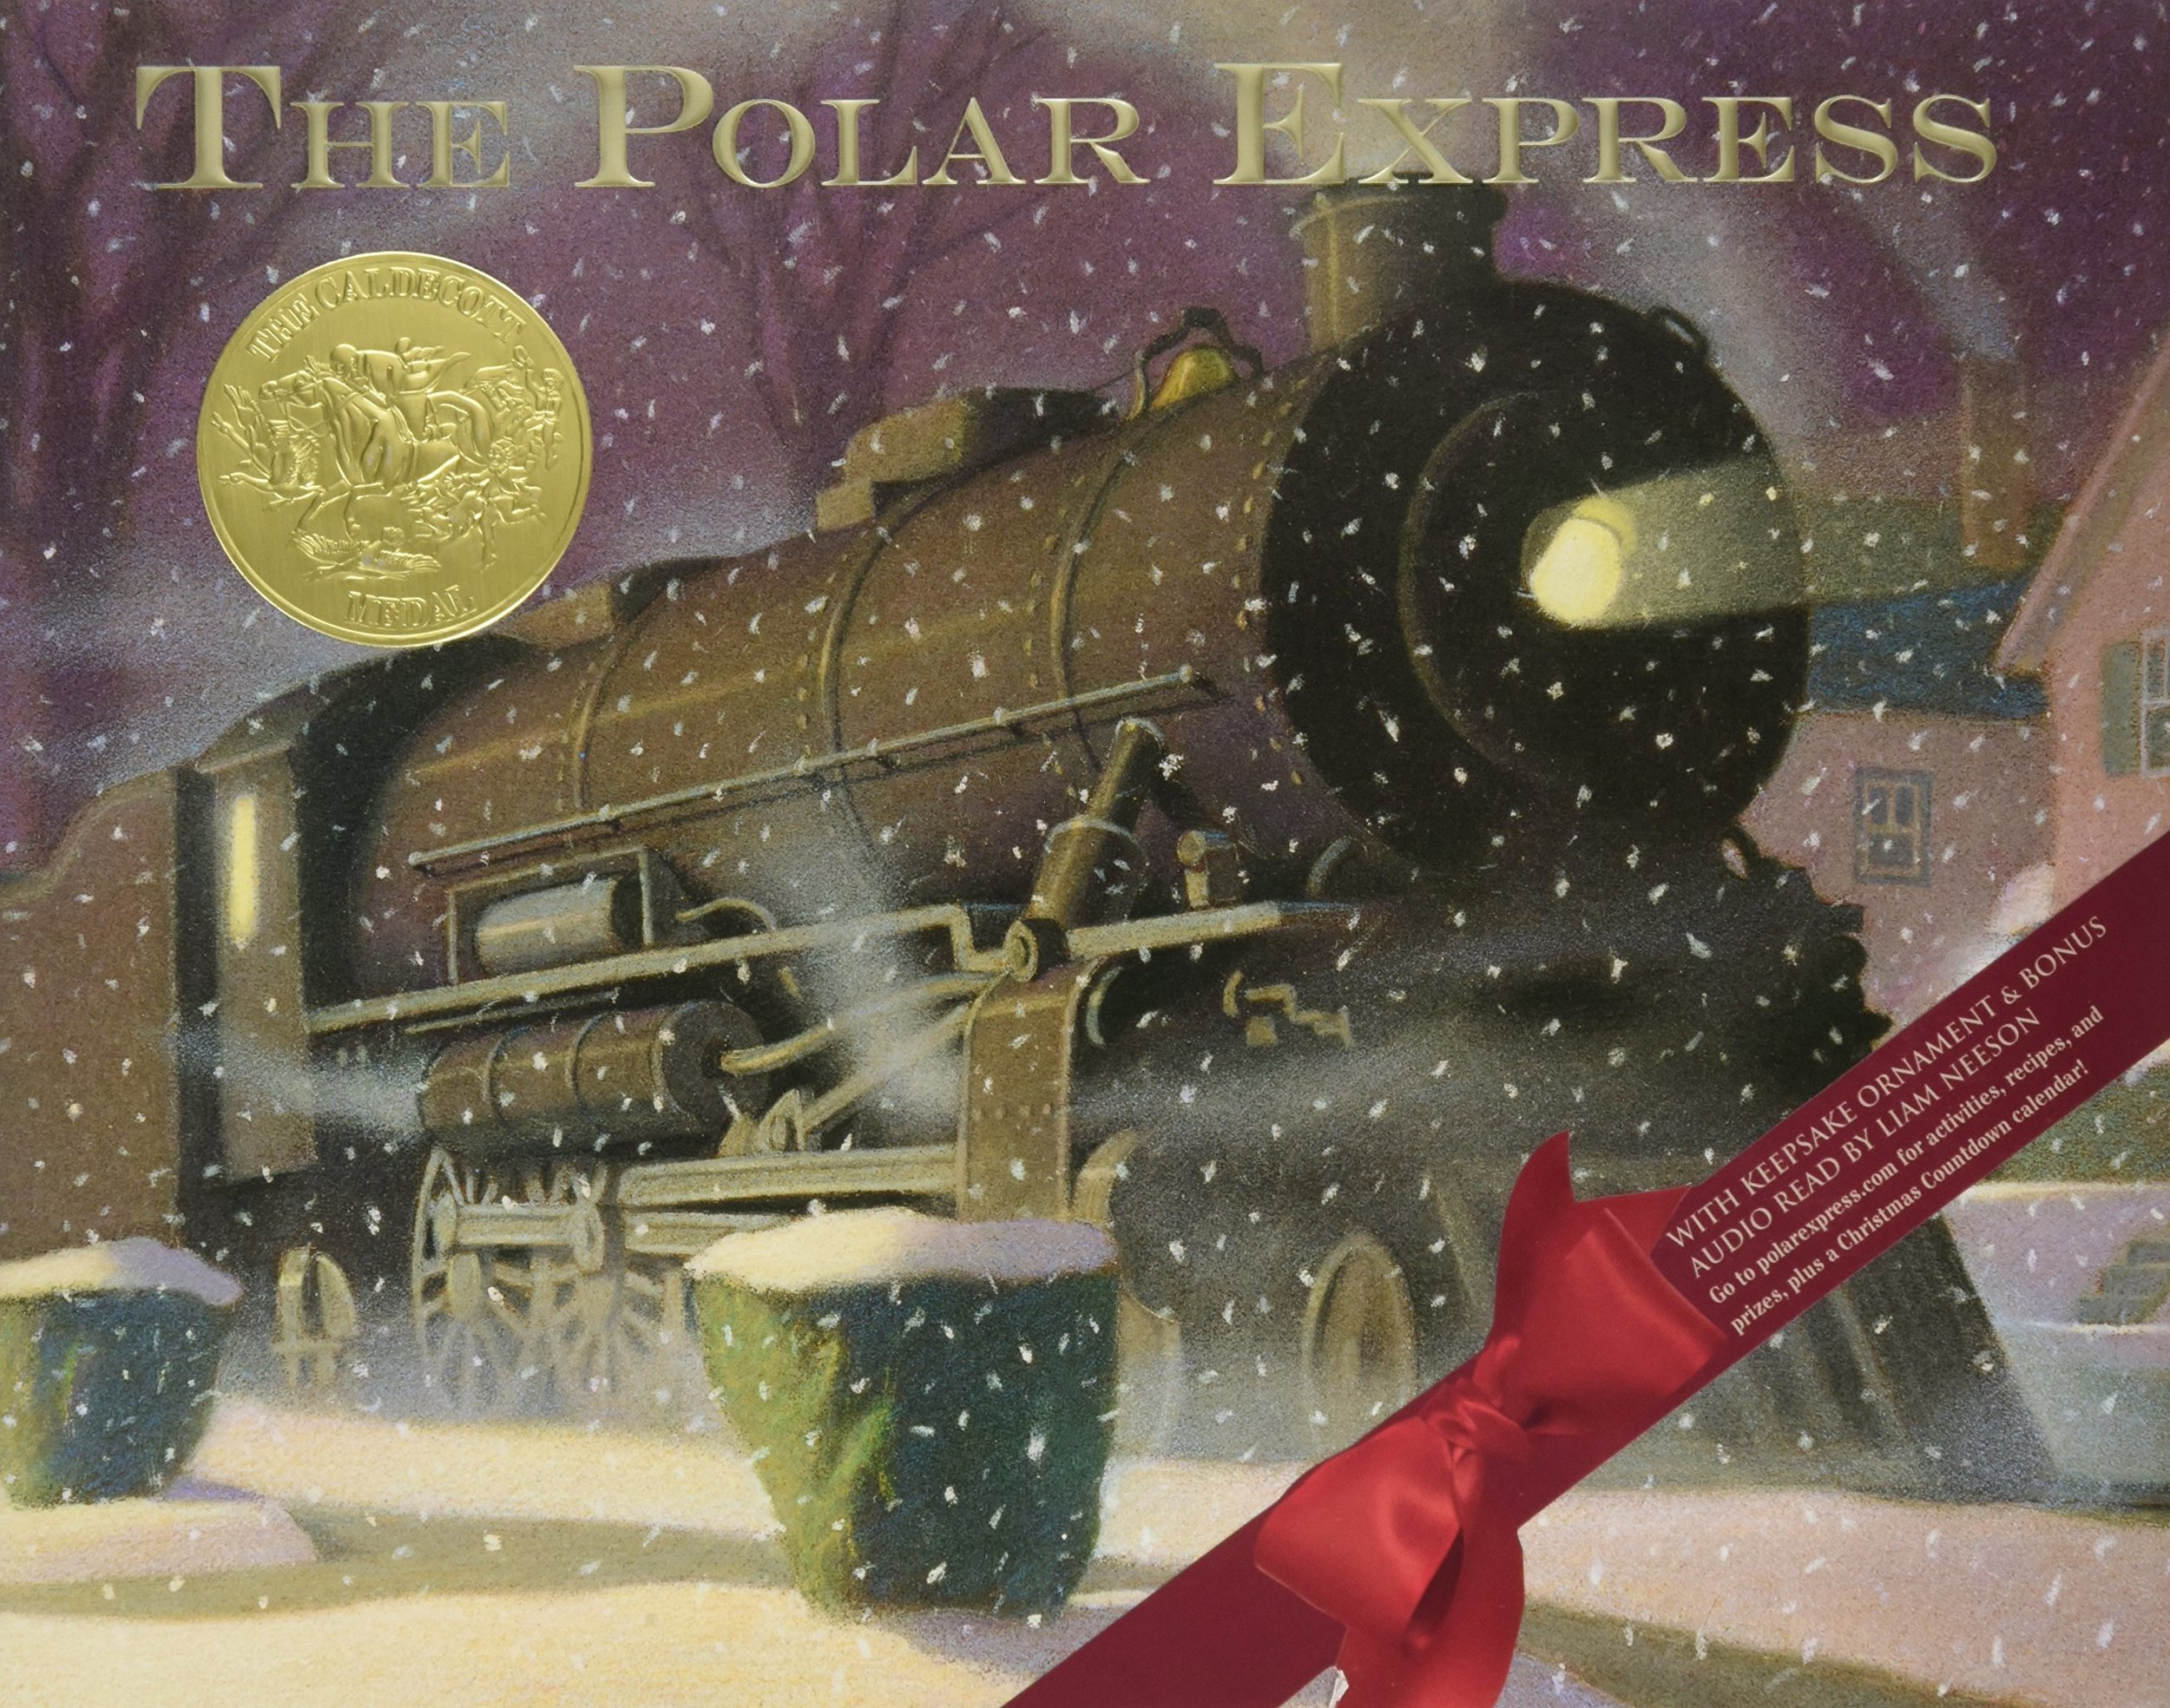 The Best Picture Books About Imagination - The Polar Express.jpg